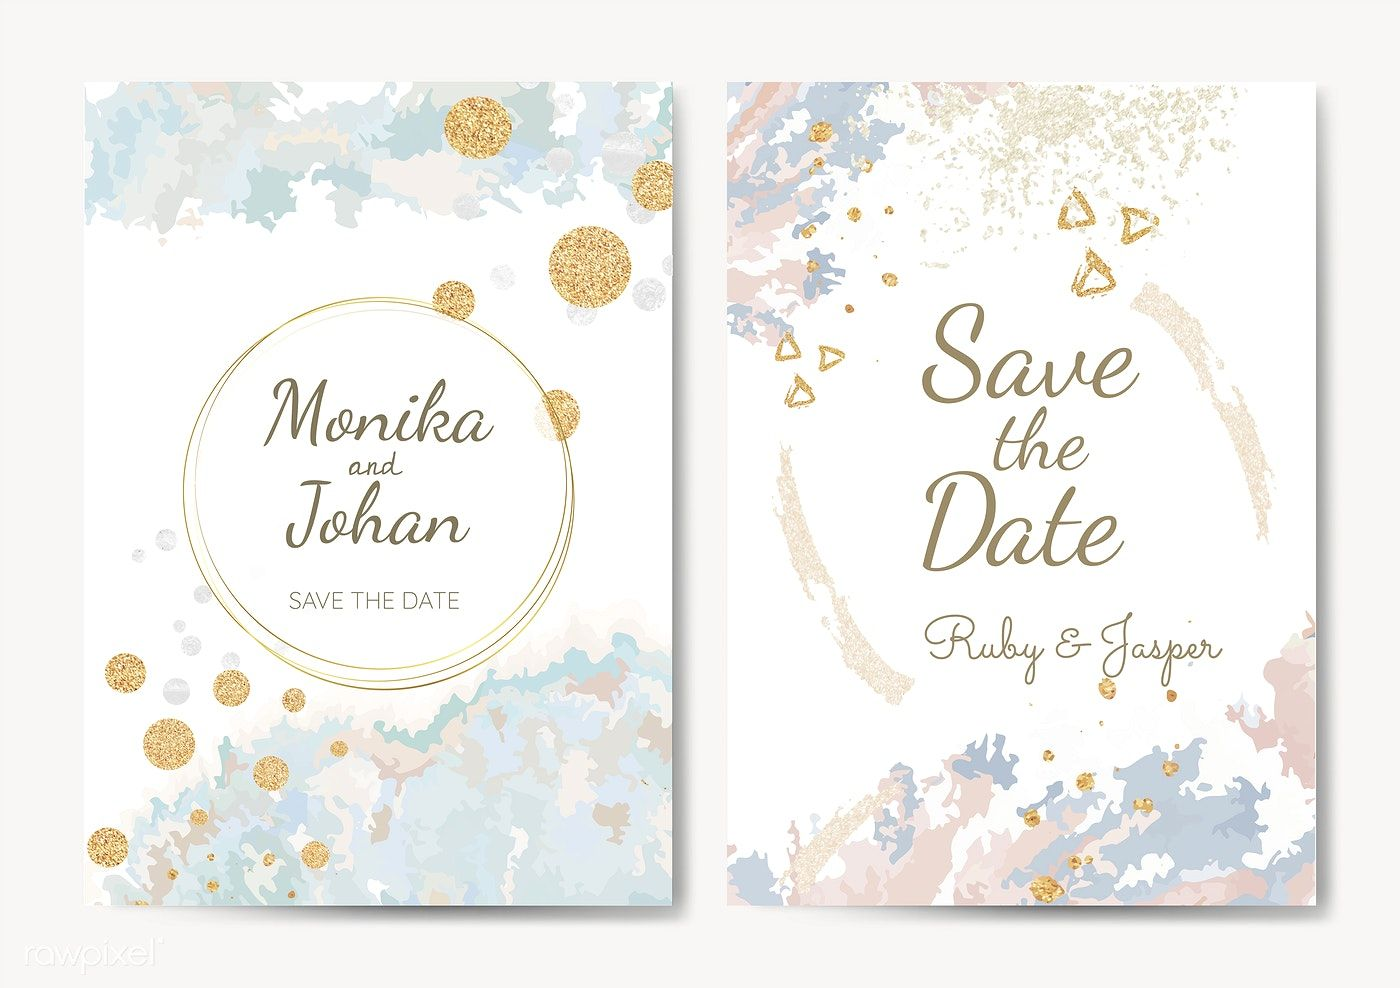 Download Premium Vector Of Save The Date Wedding Invitation Vector 533327 Wedding Invitation Vector Wedding Invitations Vector Free